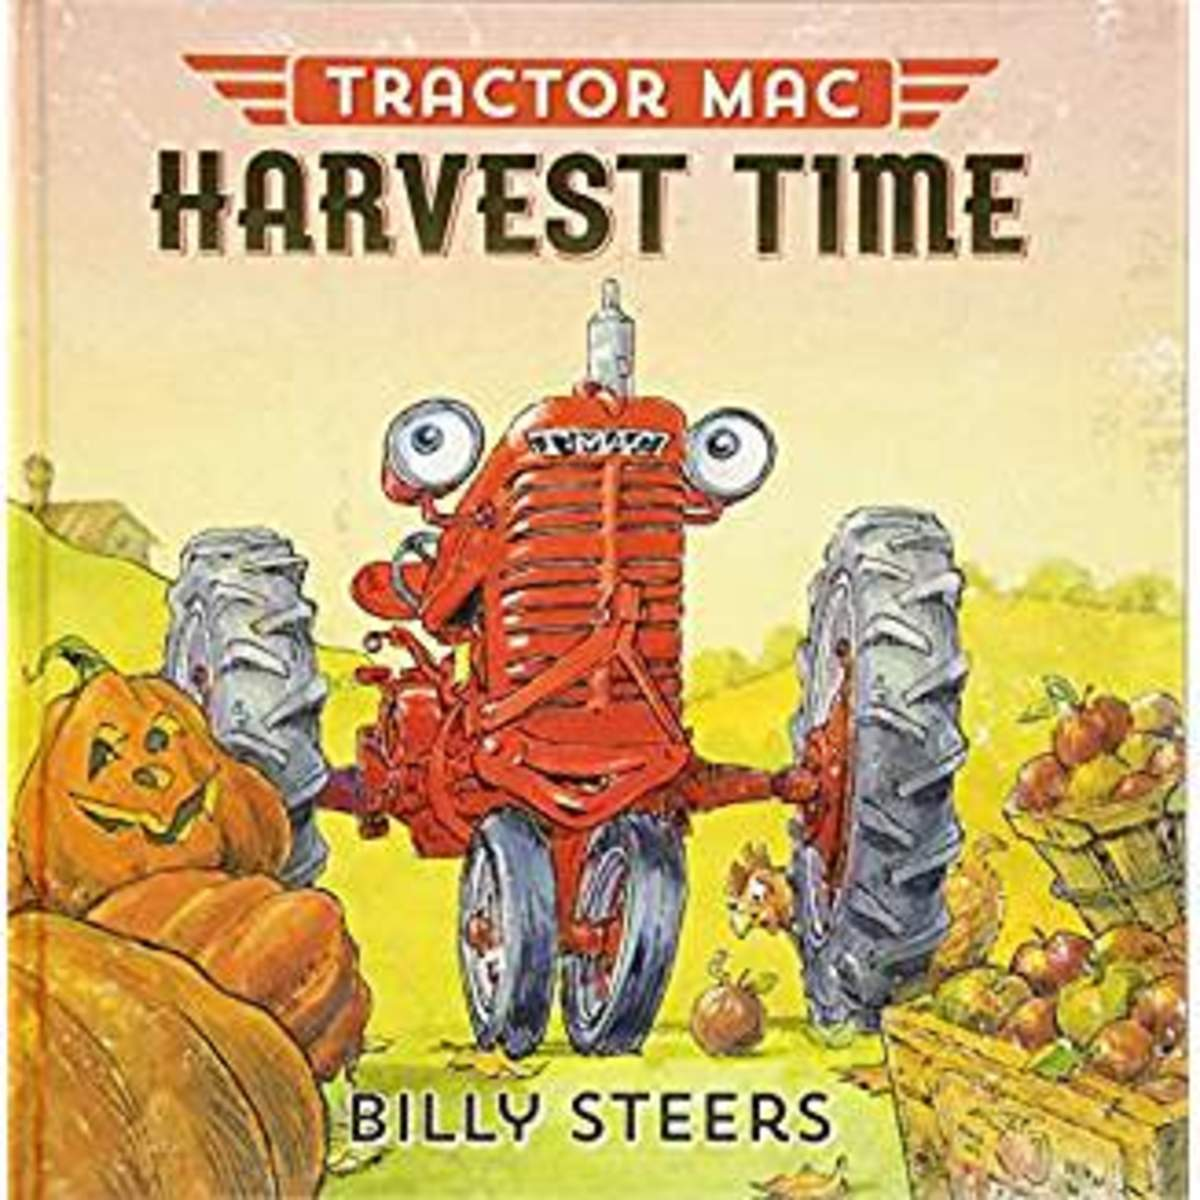 Tractor Mac: Harvest Time by Billy Steers